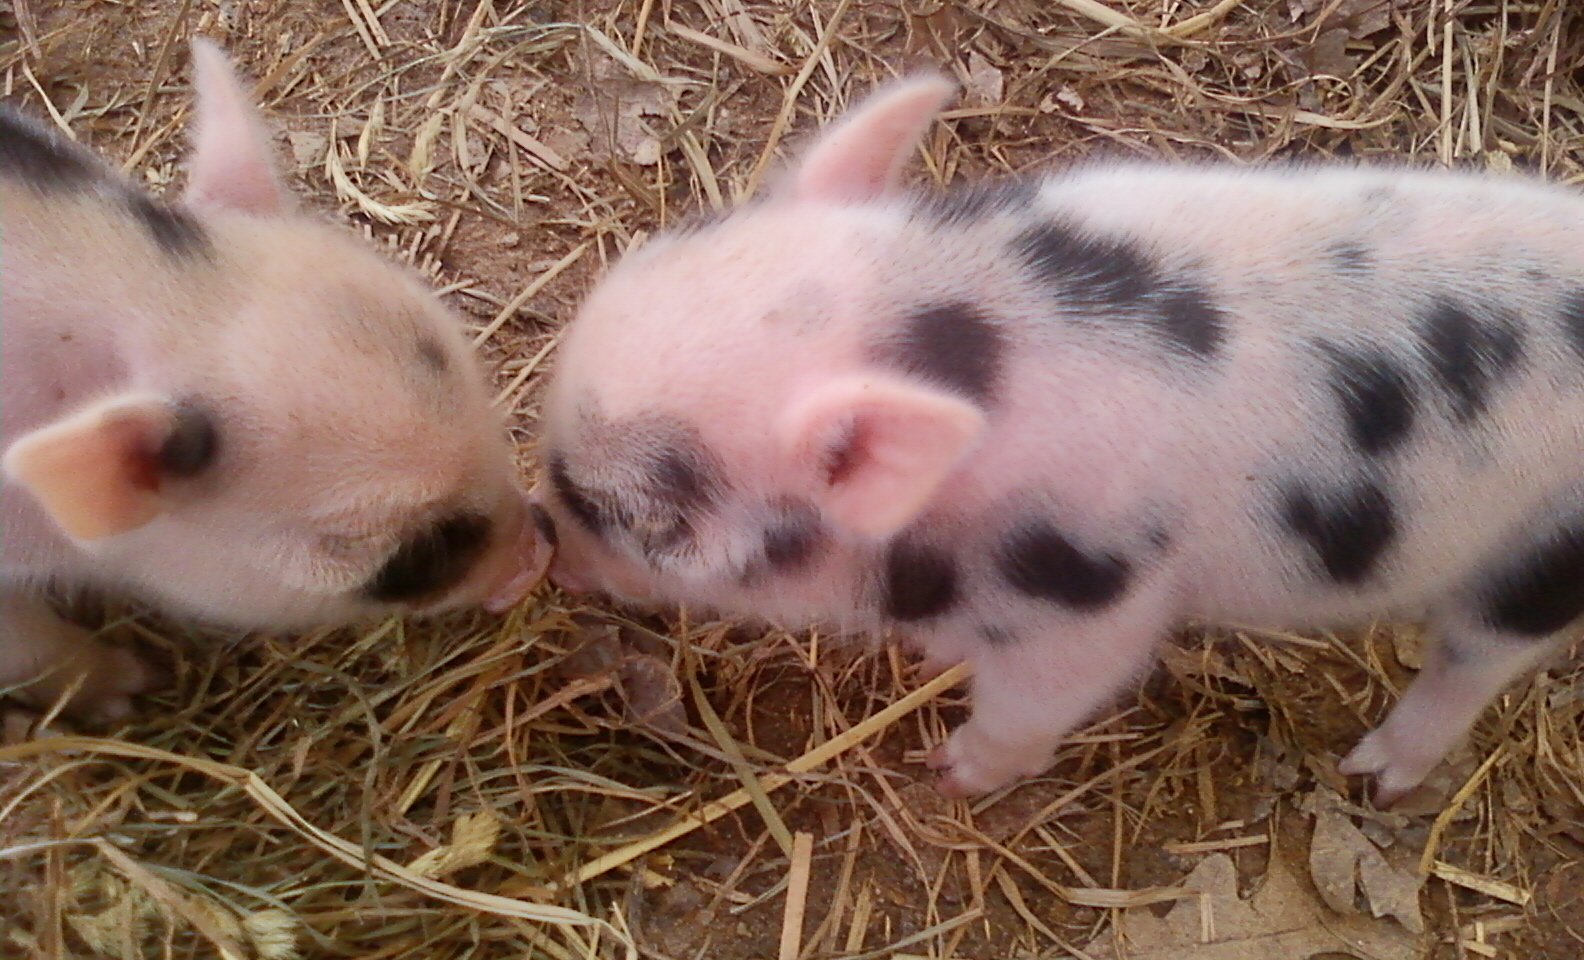 kissing piggies